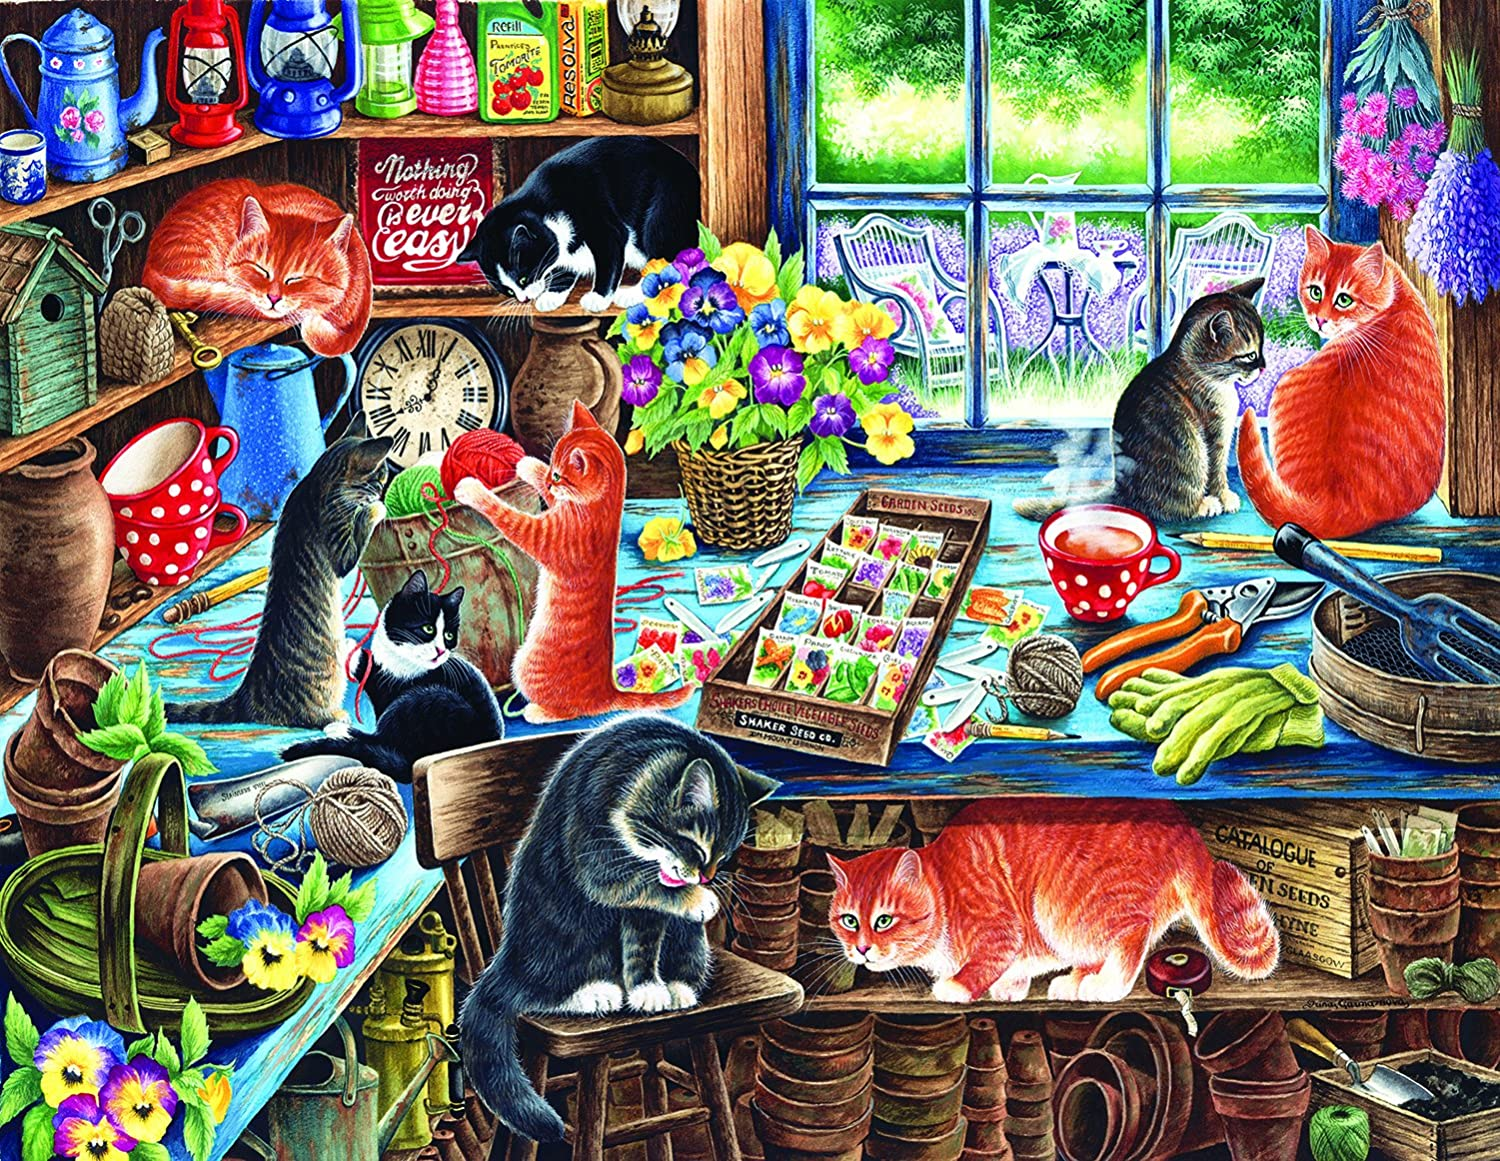 in a Garden Shed 1000 PieceLarge Jigsaw Puzzle by SunsOut